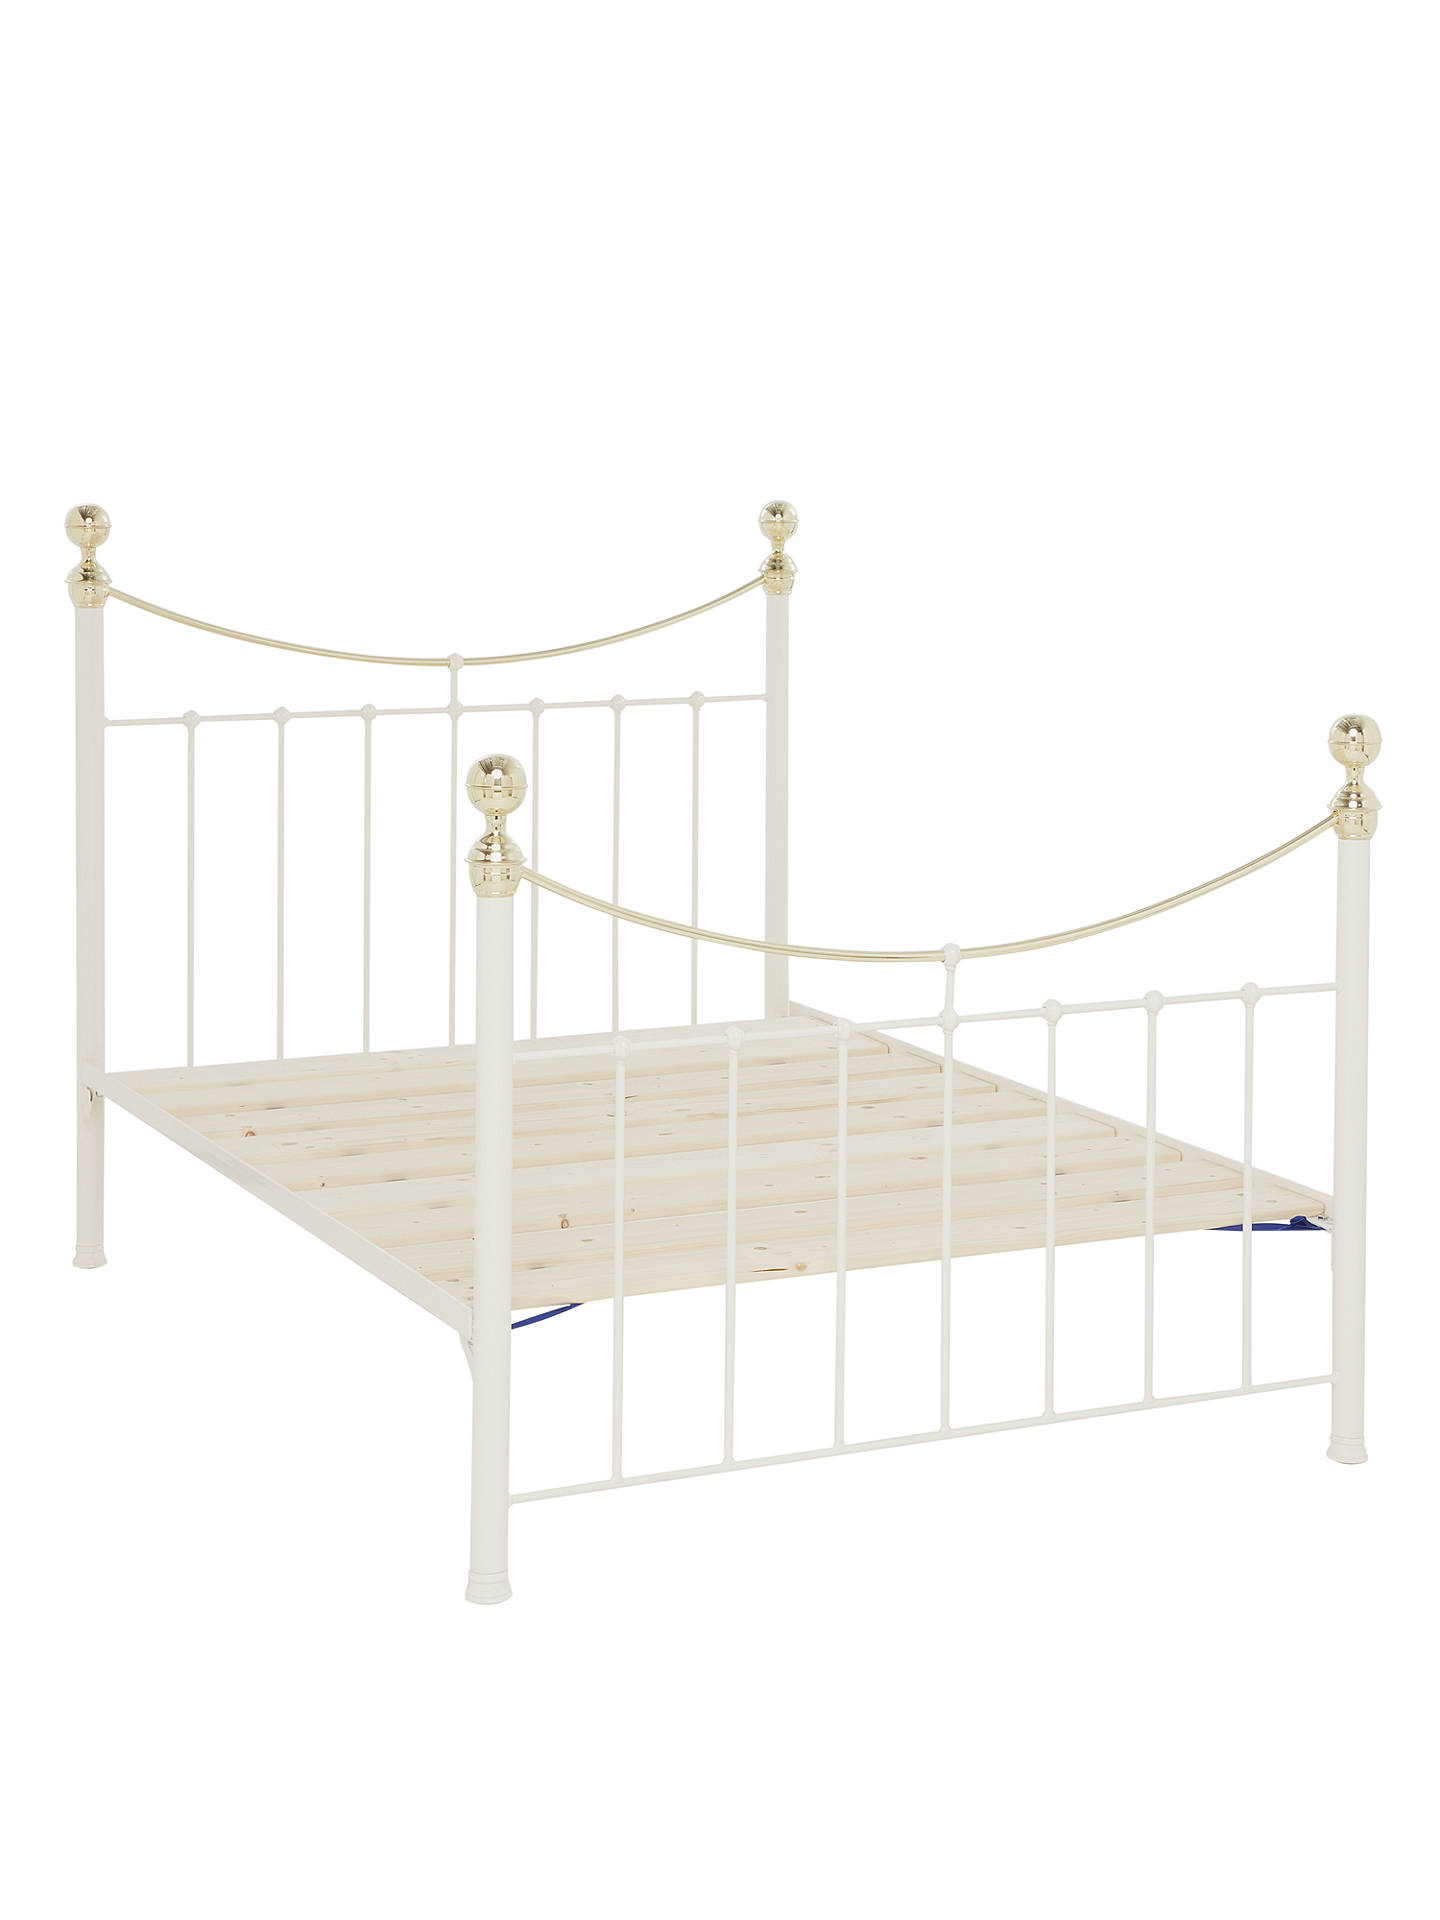 Wrought Iron And Brass Bed Co. Victoria Bed Frame, King Size, Ivory ...